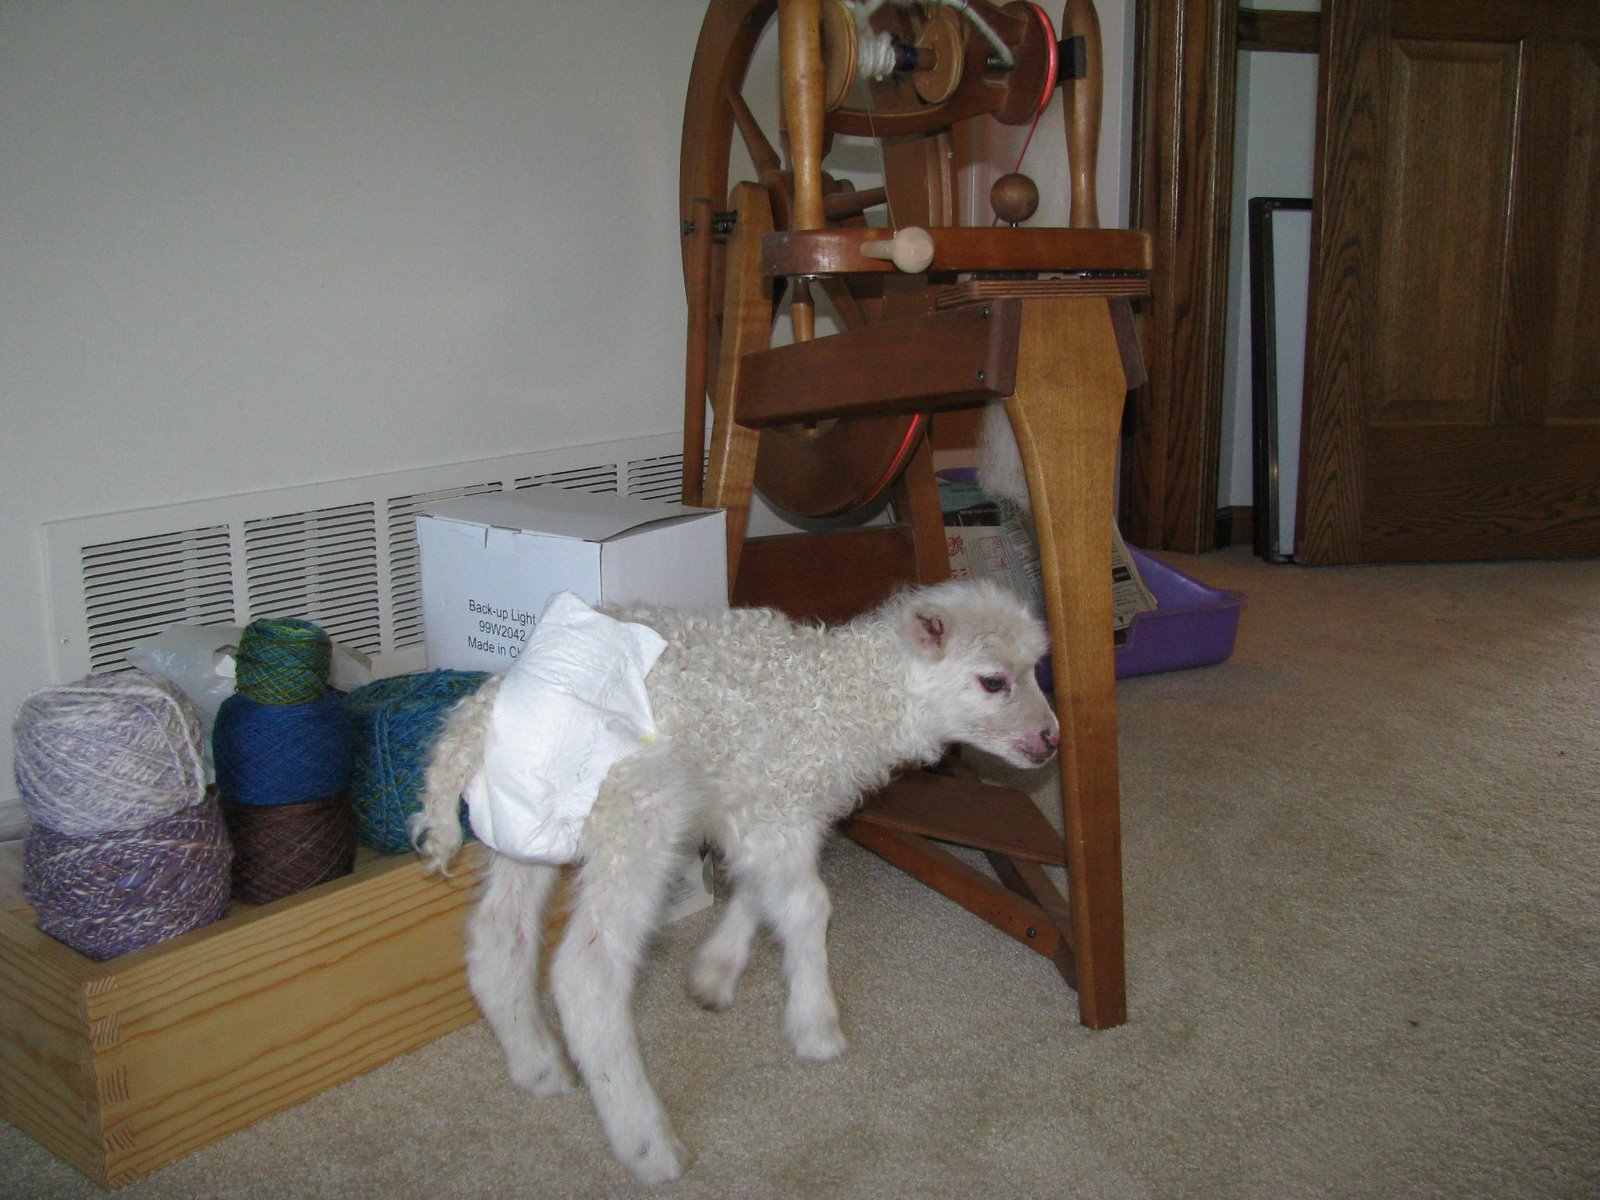 Toddlers Wearing Diapers http://chooksiniowa.blogspot.com/2011/01/diapers-for-goat-kids-and-lambs.html